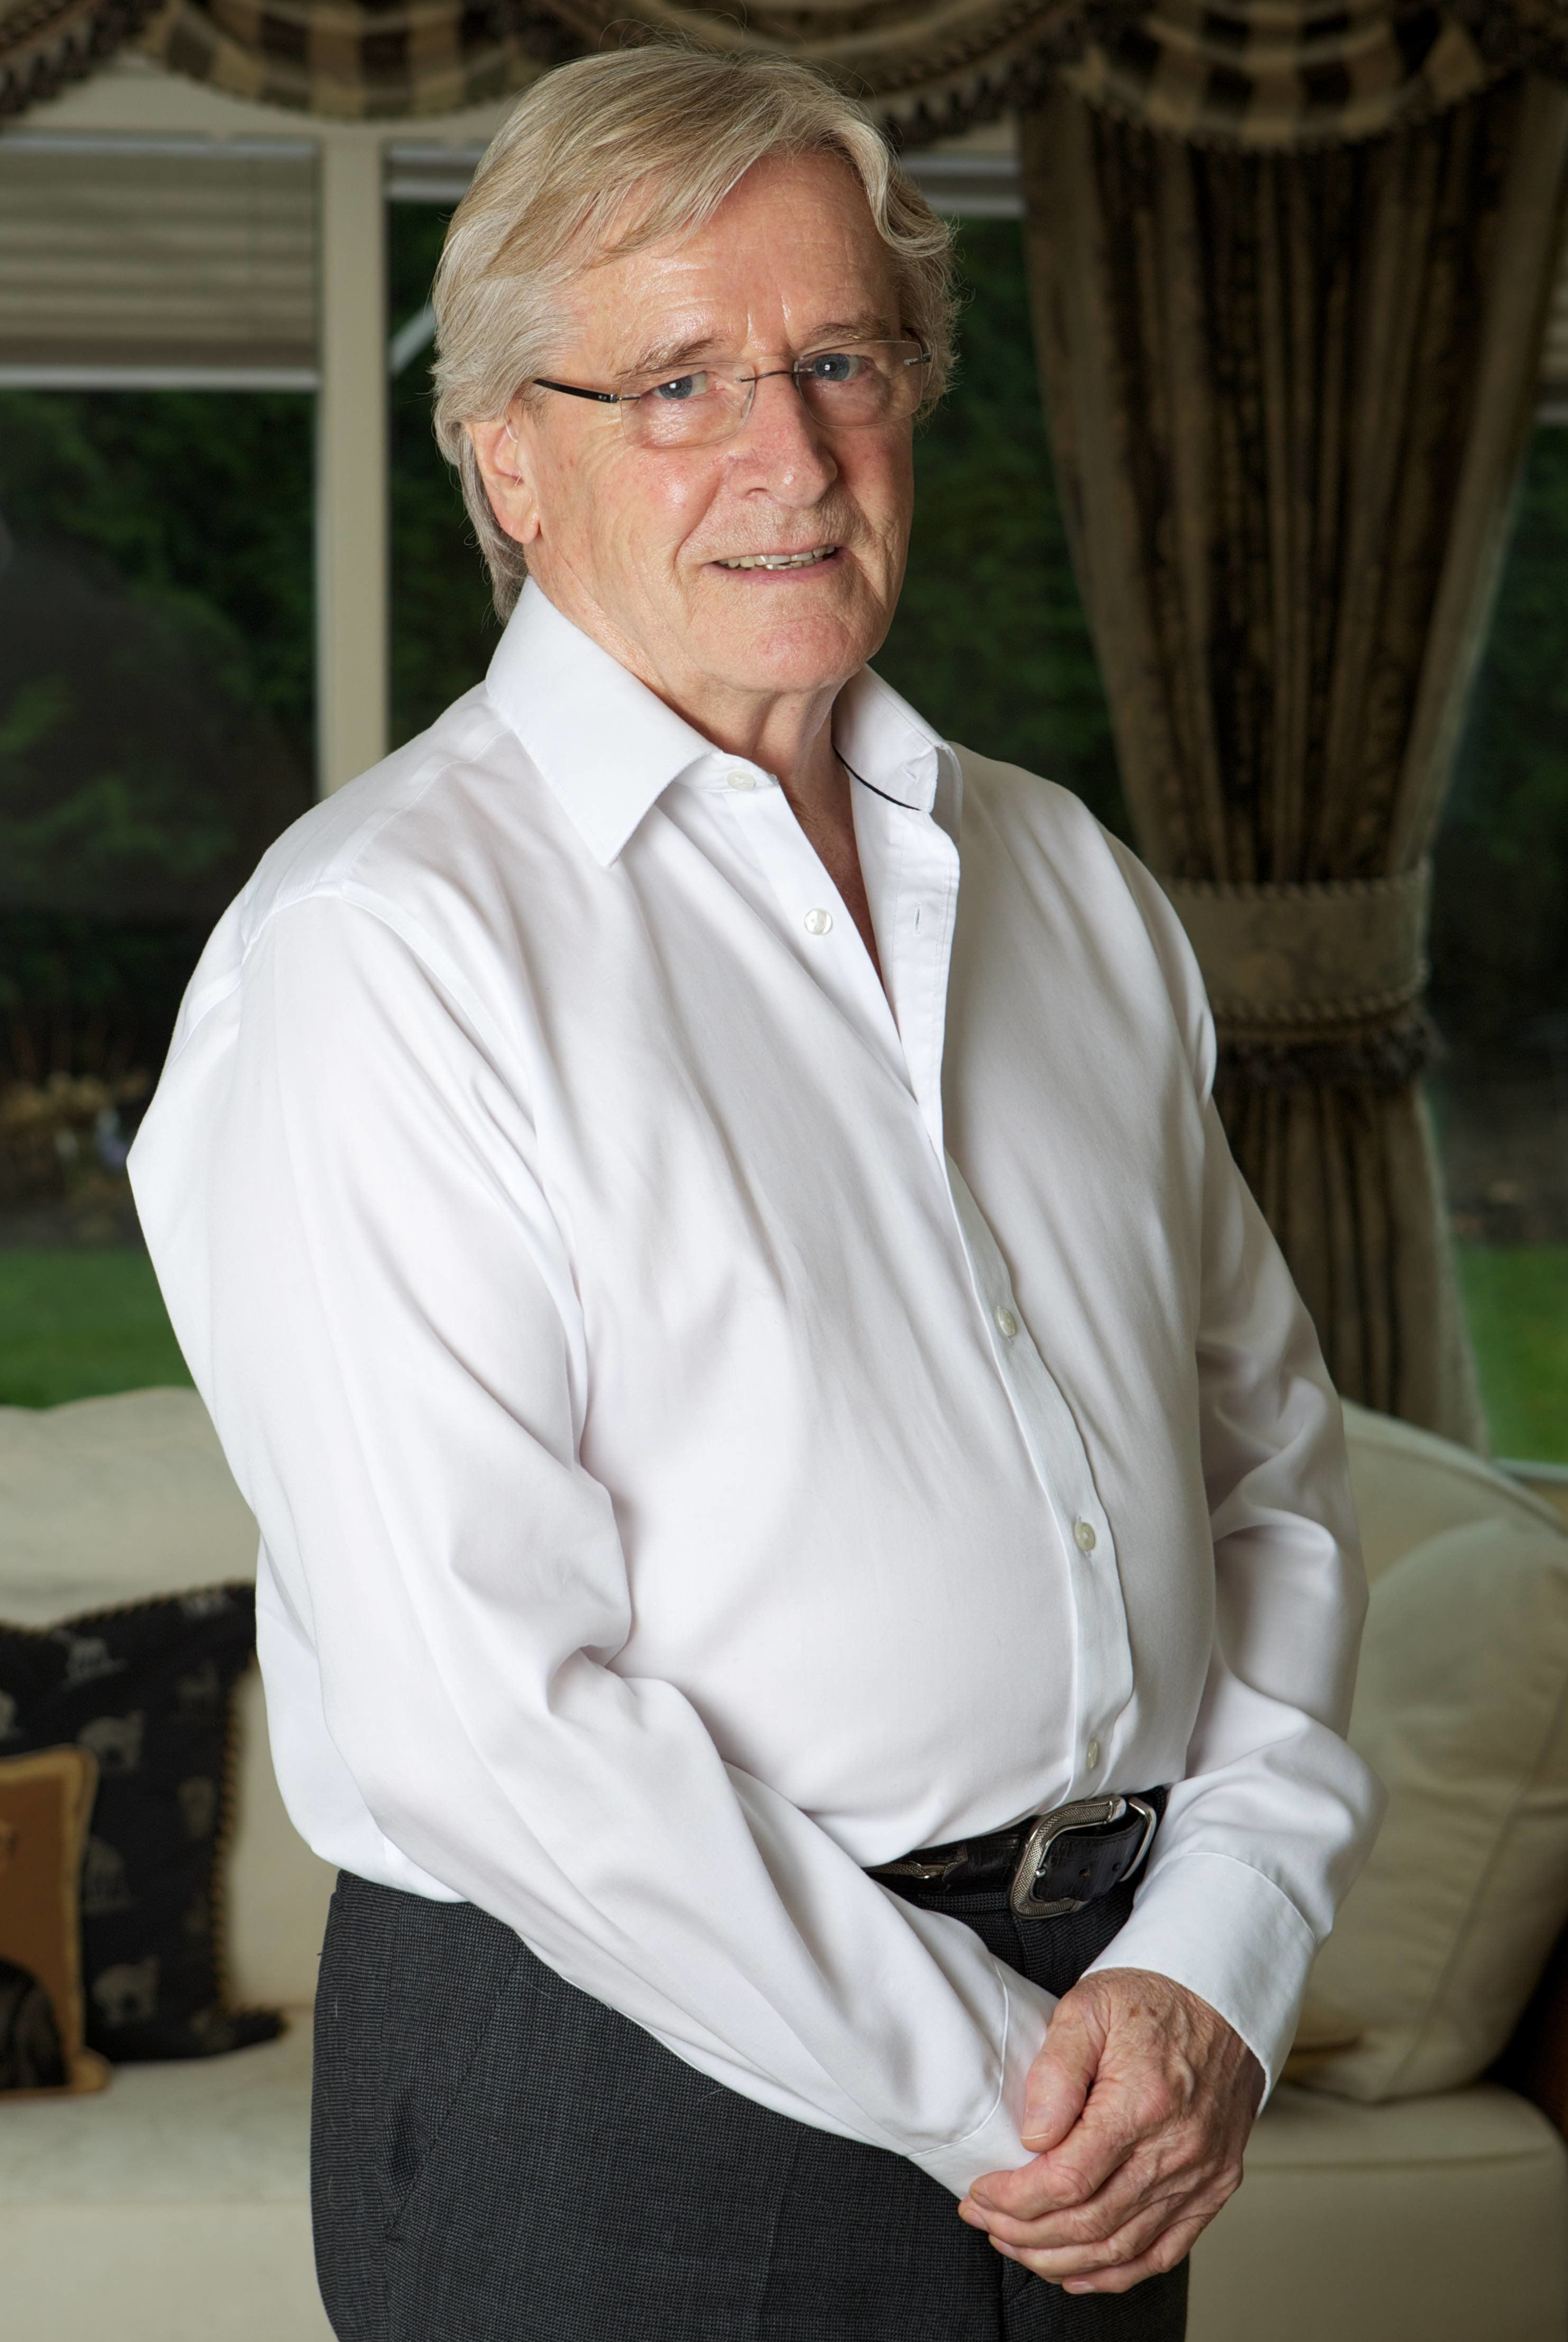 'Coronation Street' Star Bill Roache On Leave From Soap Following Death Of Daughter